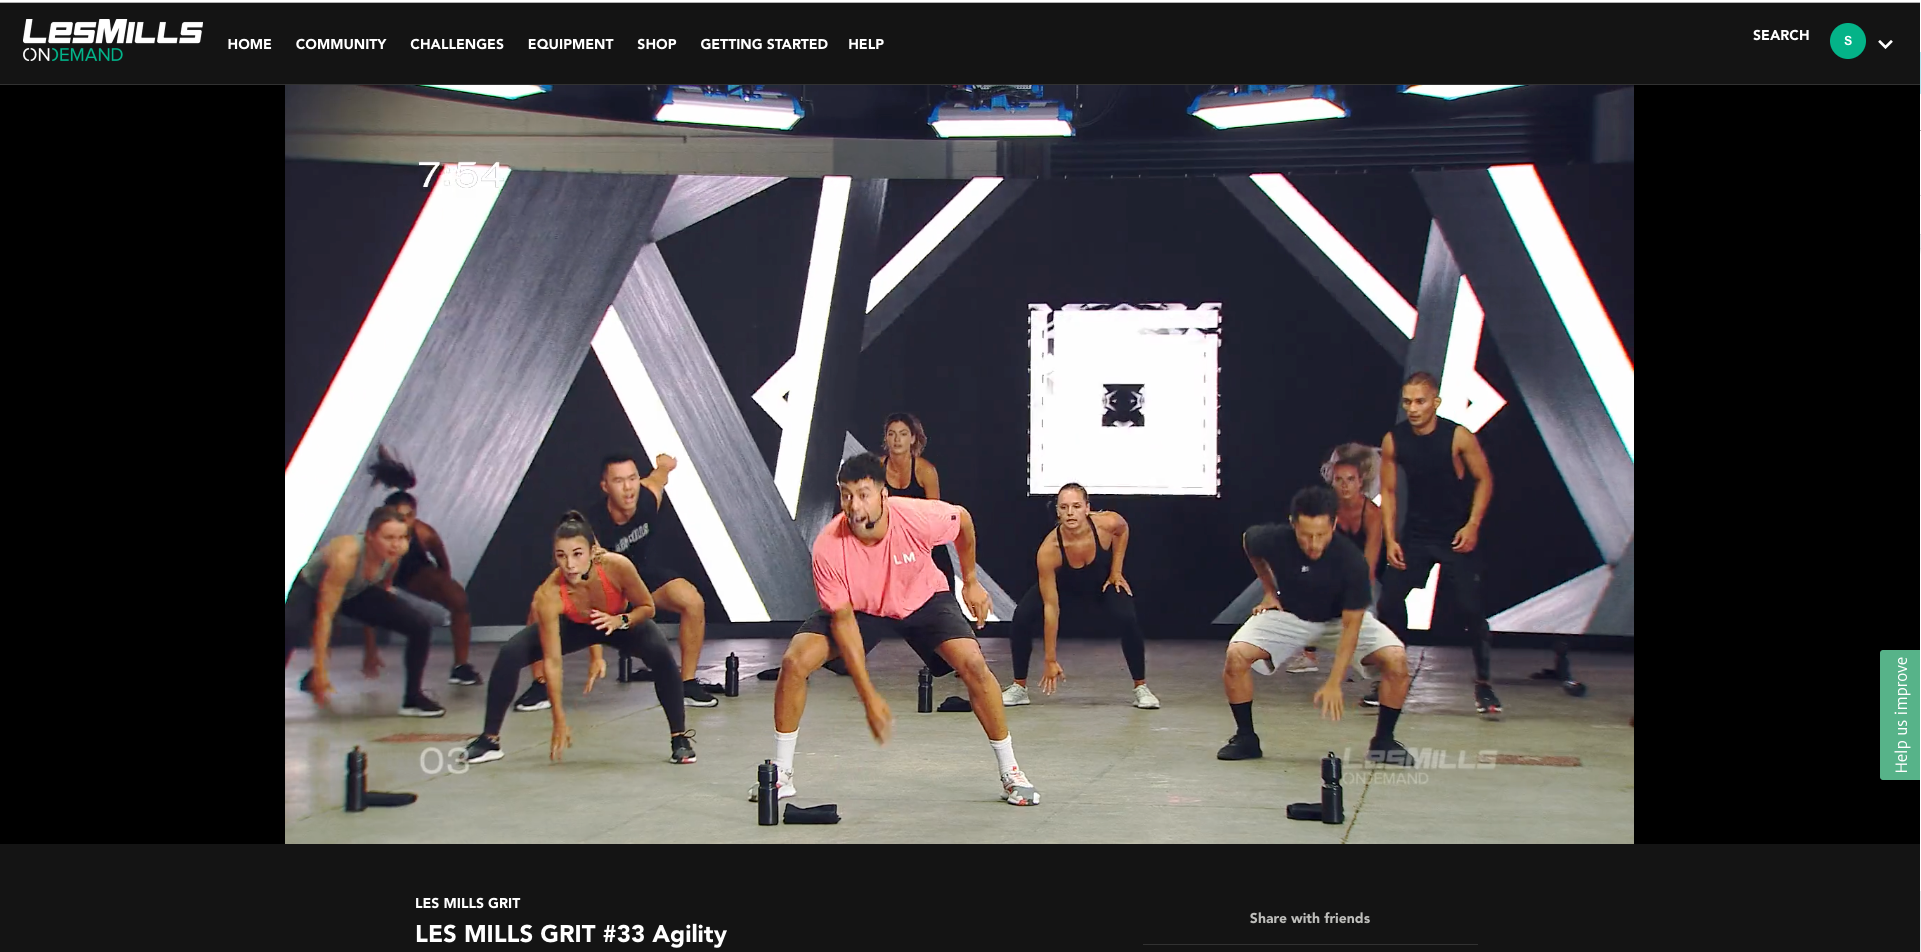 LES MILLS offers webcasts of in-person gym classes